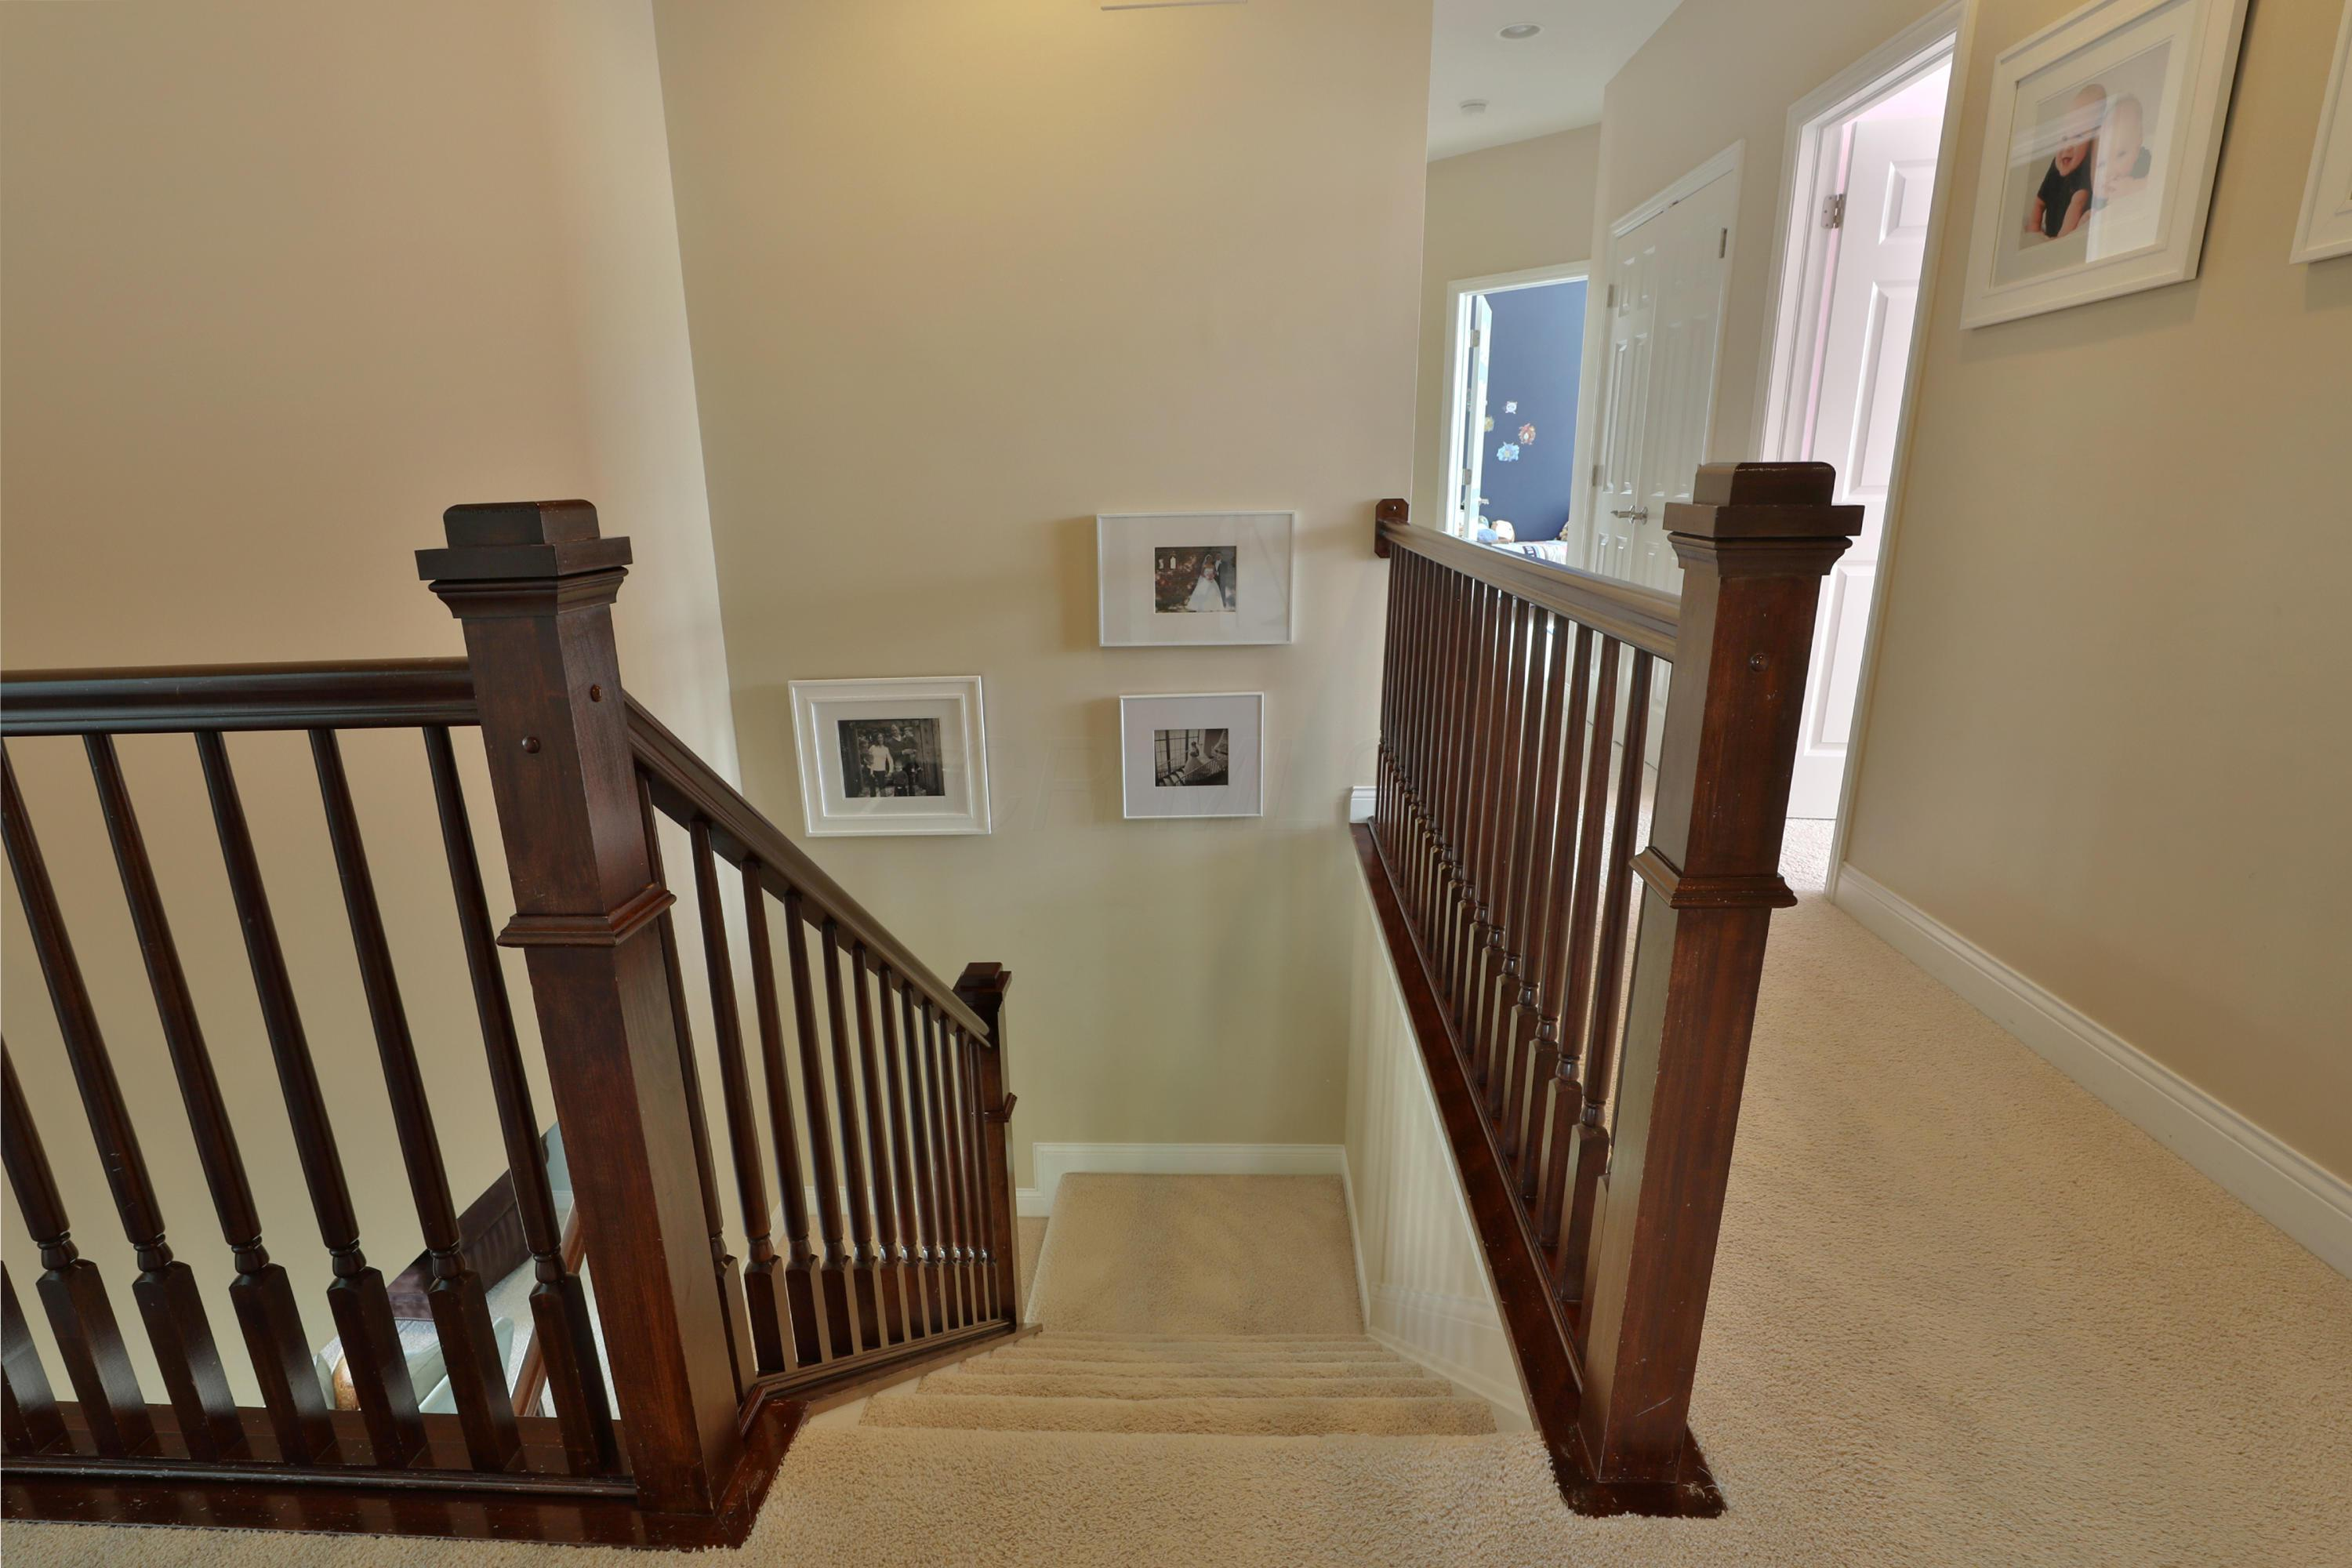 7804 Mellacent Drive, Columbus, Ohio 43235, 4 Bedrooms Bedrooms, ,4 BathroomsBathrooms,Residential,For Sale,Mellacent,220020155